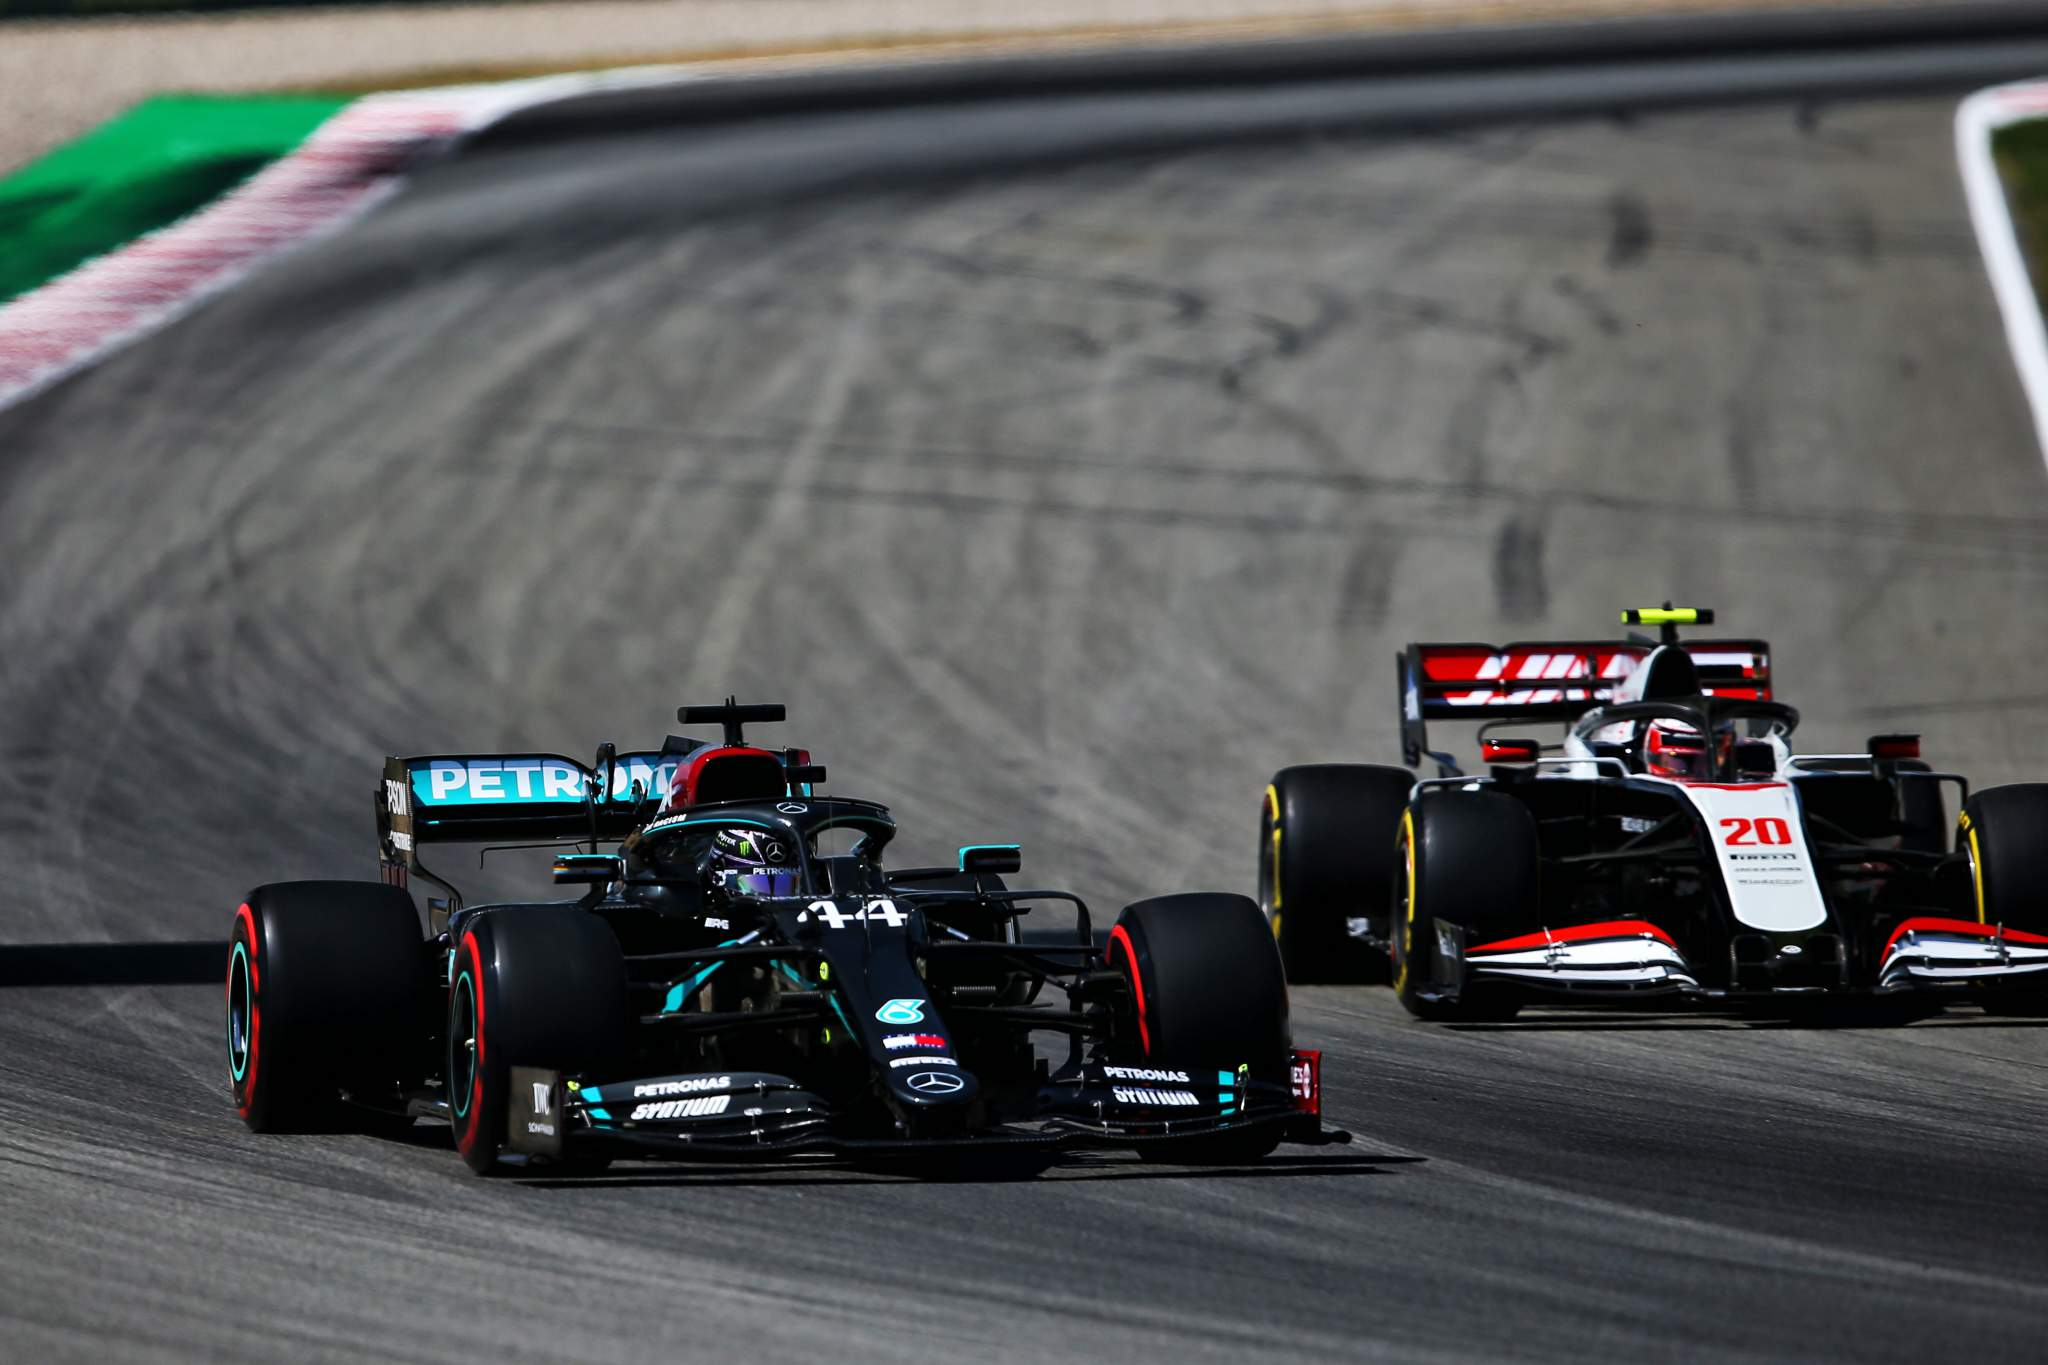 Lewis Hamilton Mercedes Kevin Magnussen Haas Spanish Grand Prix 2020 Barcelona